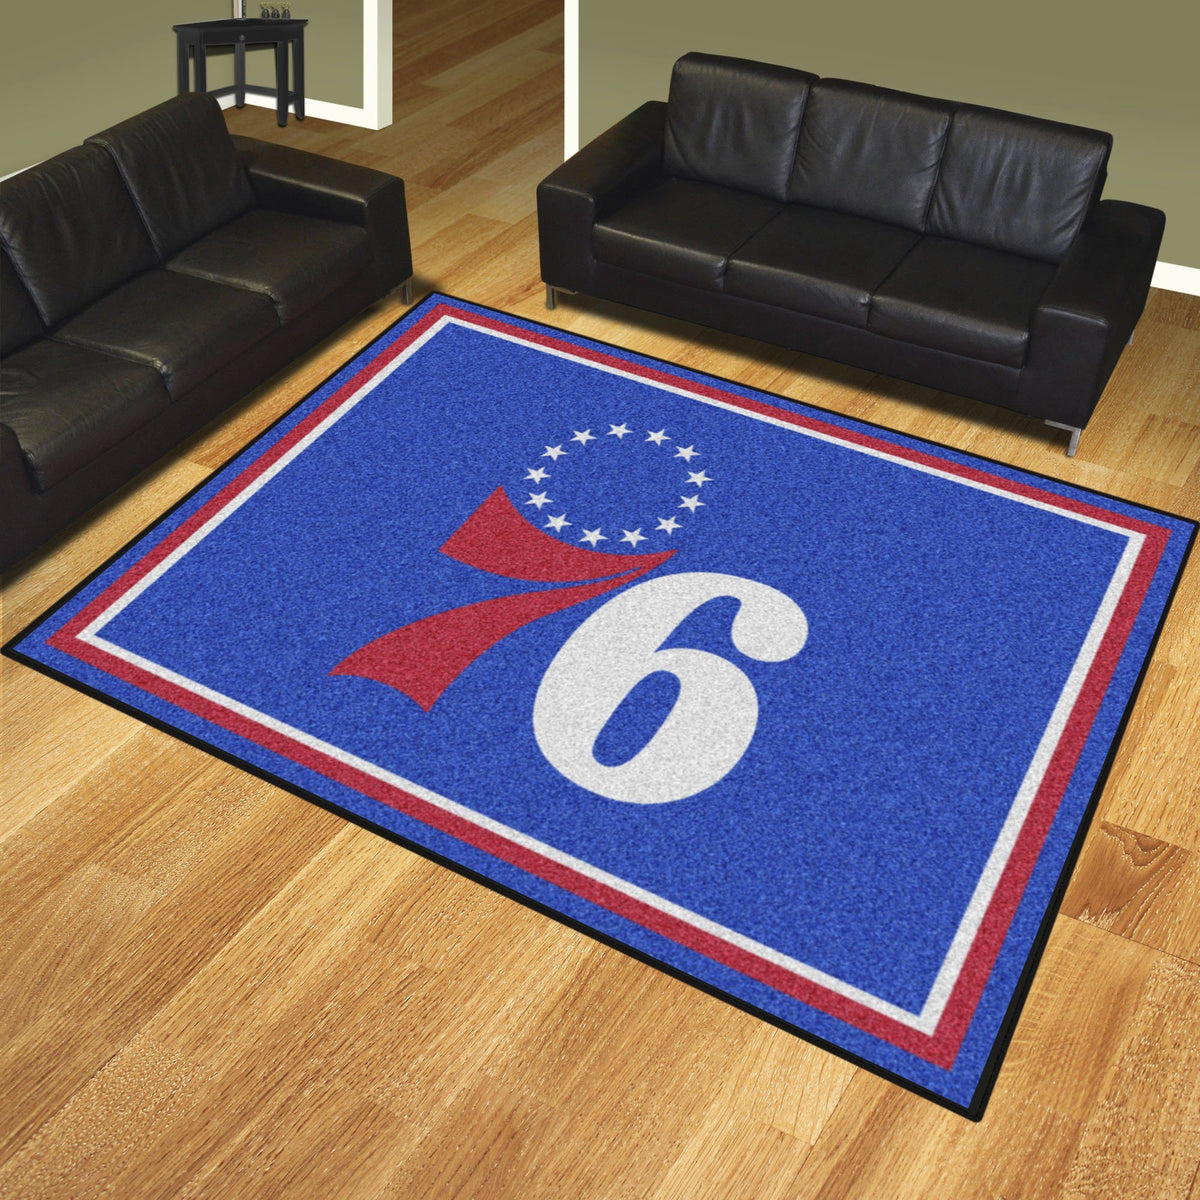 NBA - 8' x 10' Rug NBA Mats, Plush Rugs, 8x10 Rug, NBA, Home Fan Mats Philadelphia 76ers